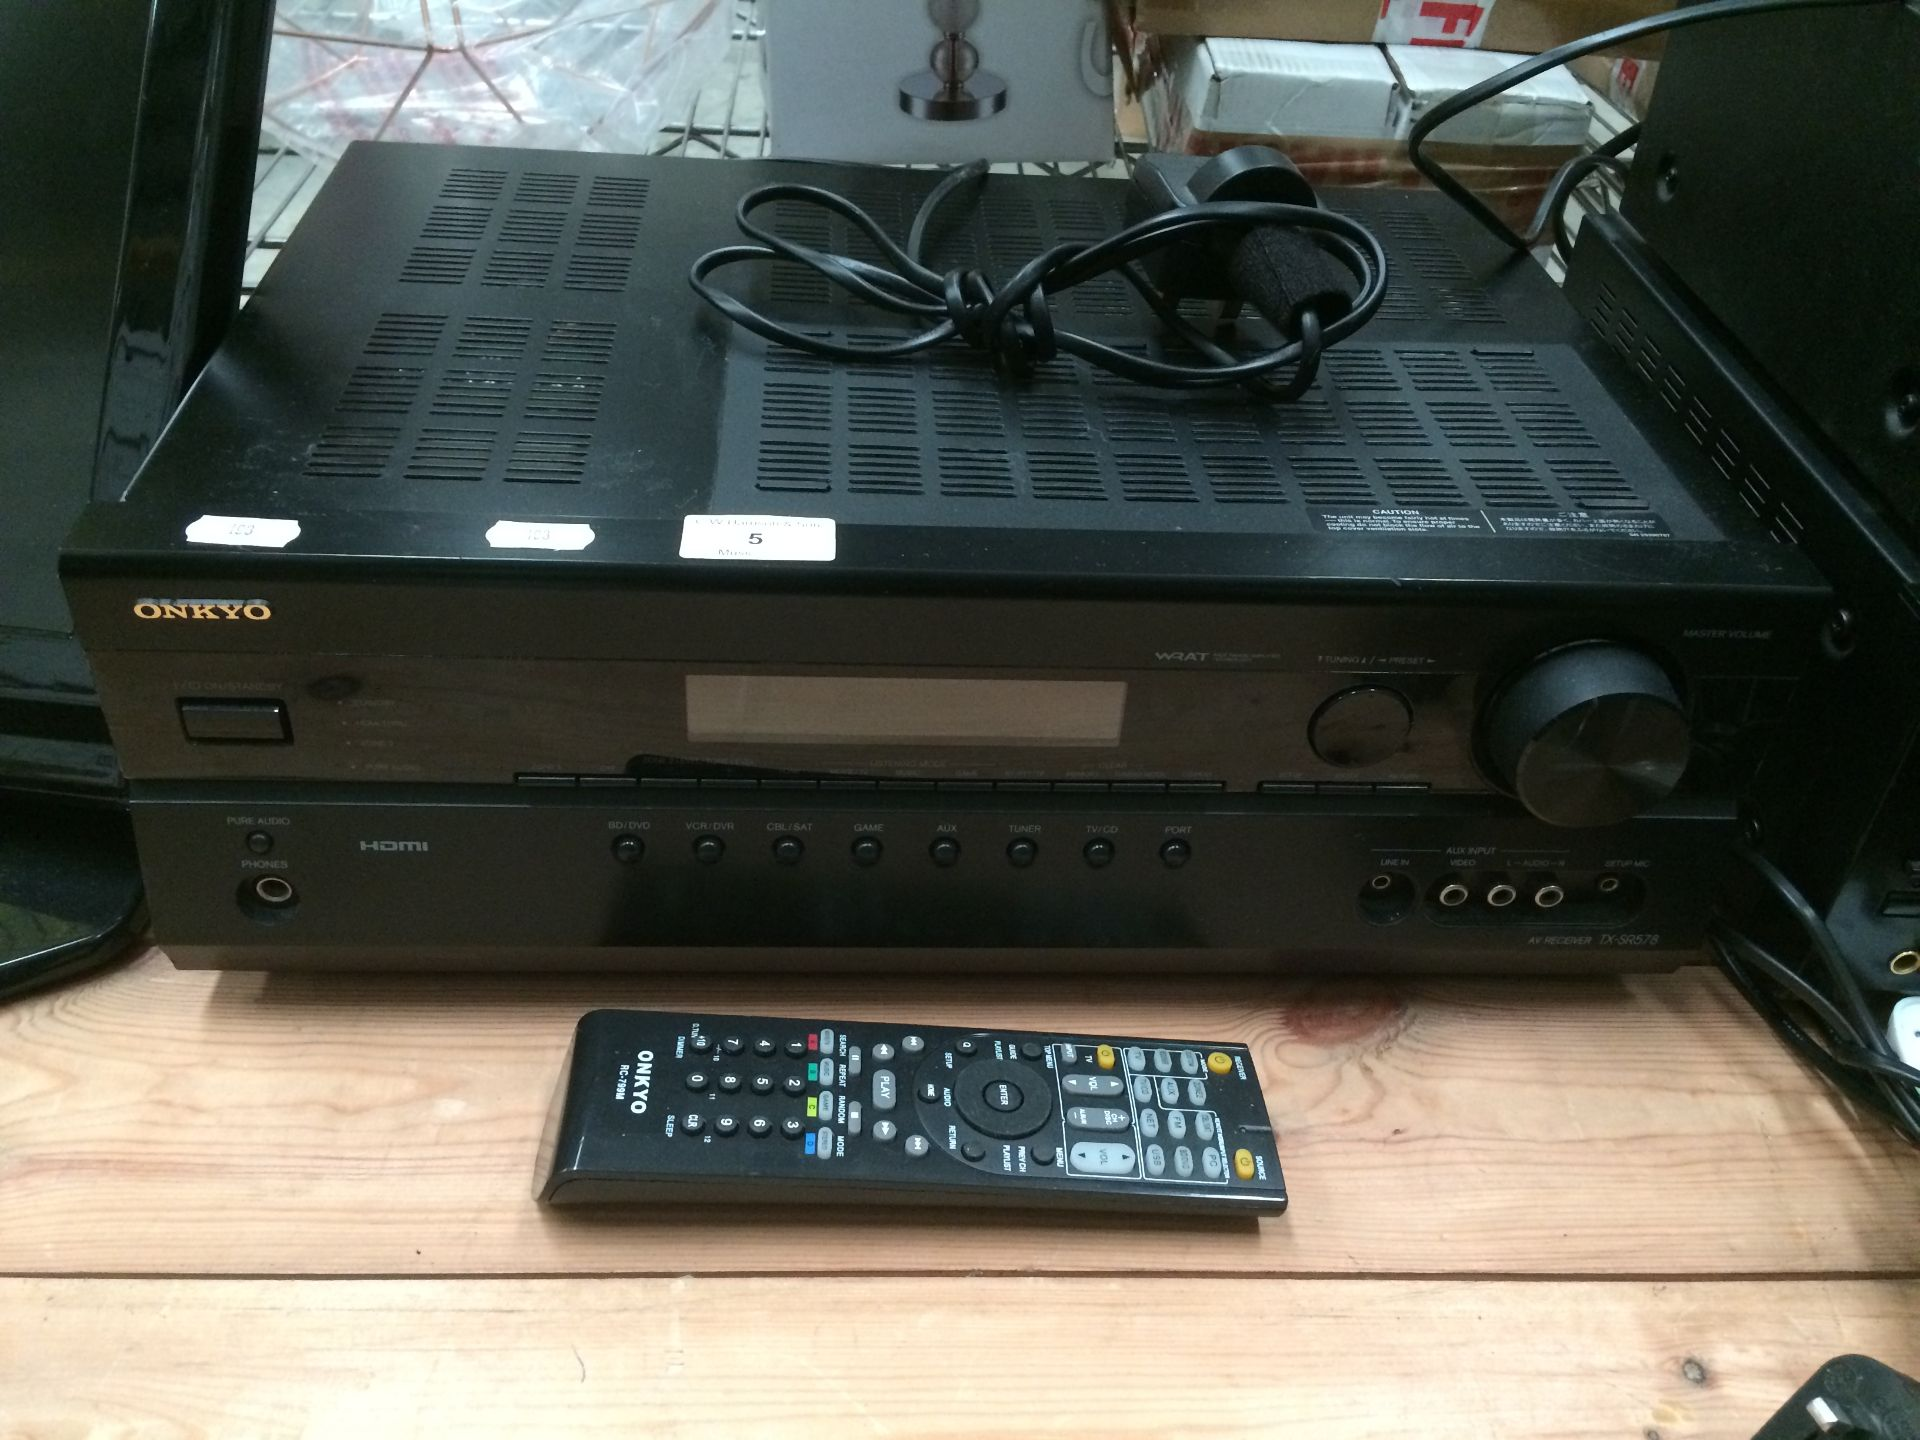 Lot 5 - Onkyo TX-SR578 AV-receiver complete with remote control